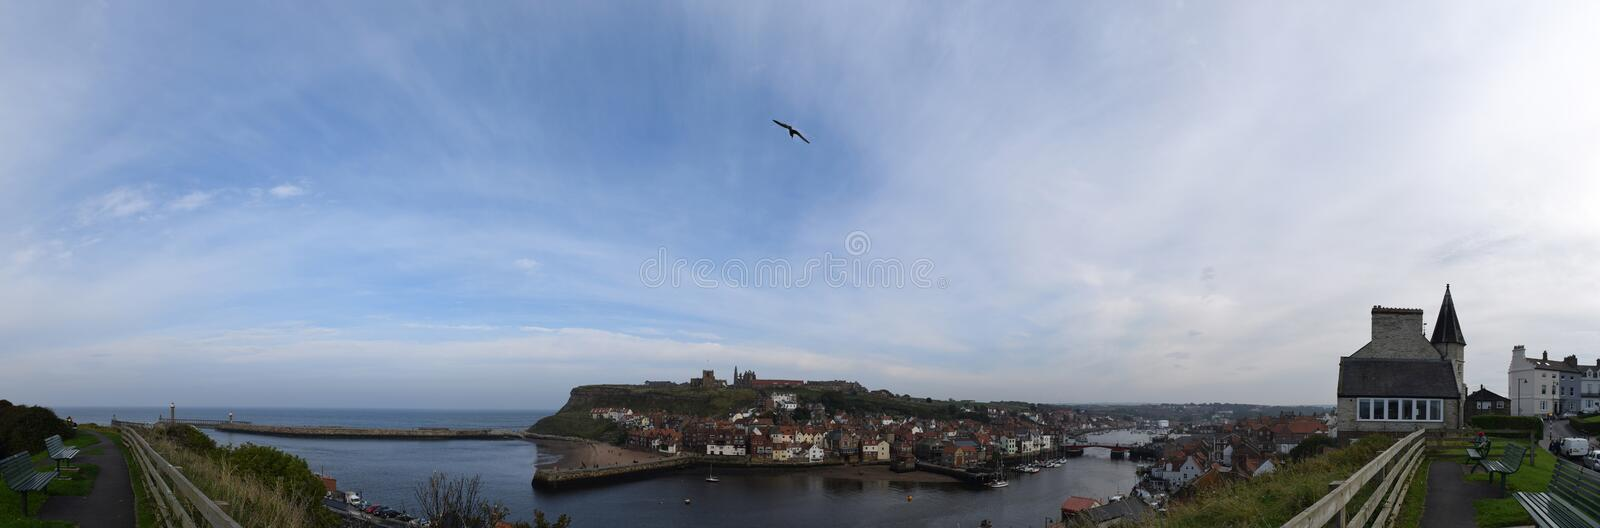 Whitby Town et abbaye, North Yorkshire, R-U photo stock